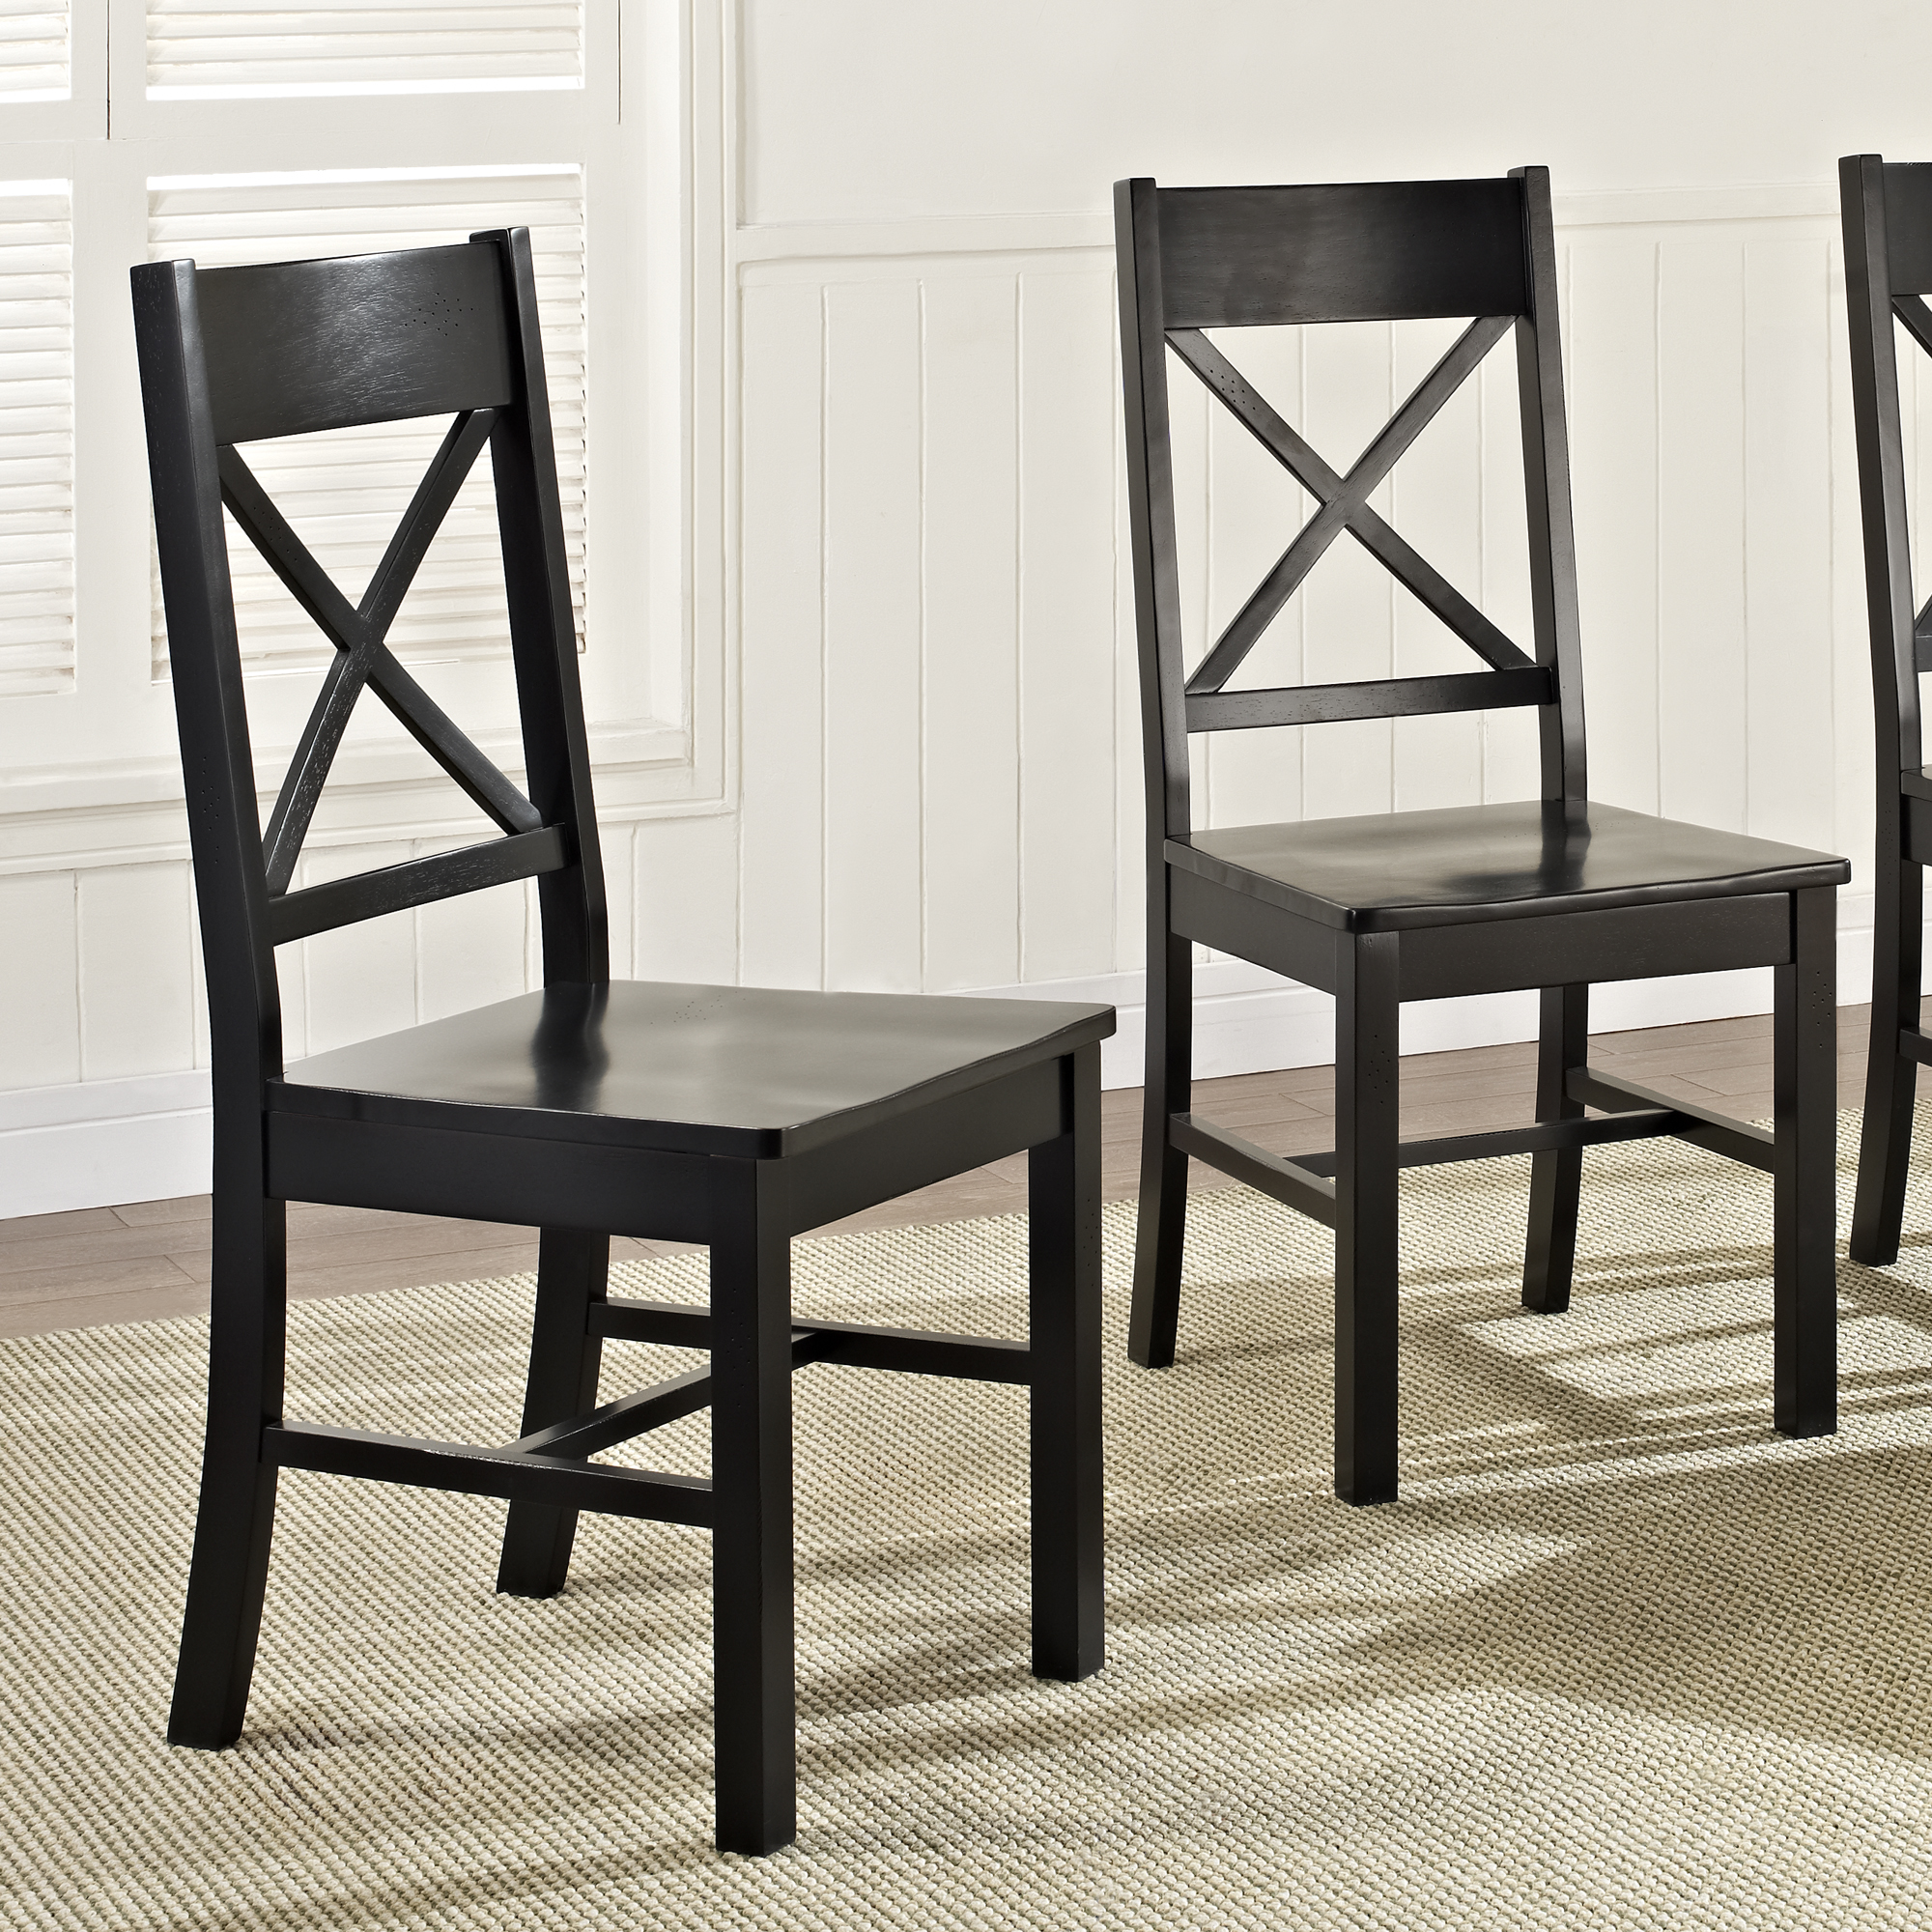 Antique Kitchen Chairs Wood Details About Antique Black Wood Dining Kitchen Chairs Set Of 2